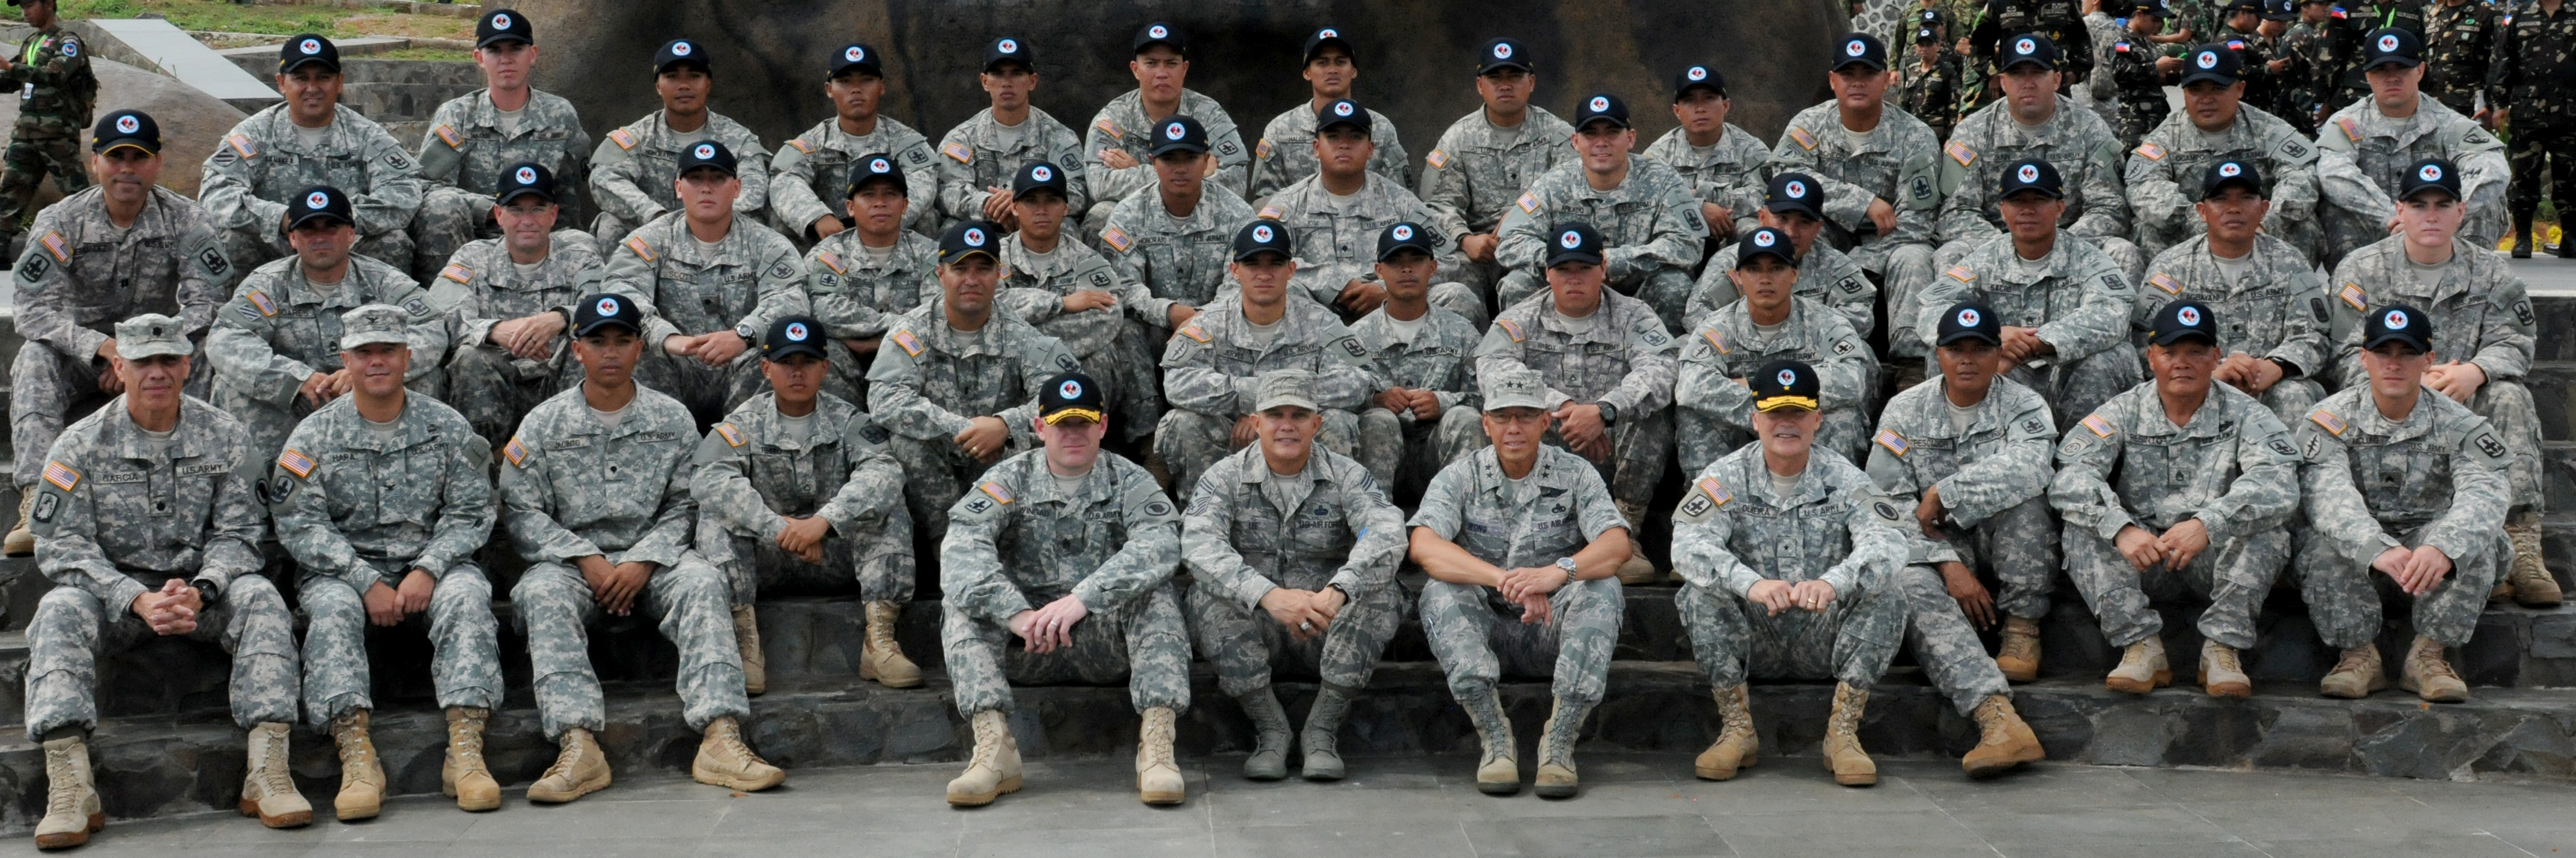 File:Senior members of the Hawaii Army National Guard pose for a ...